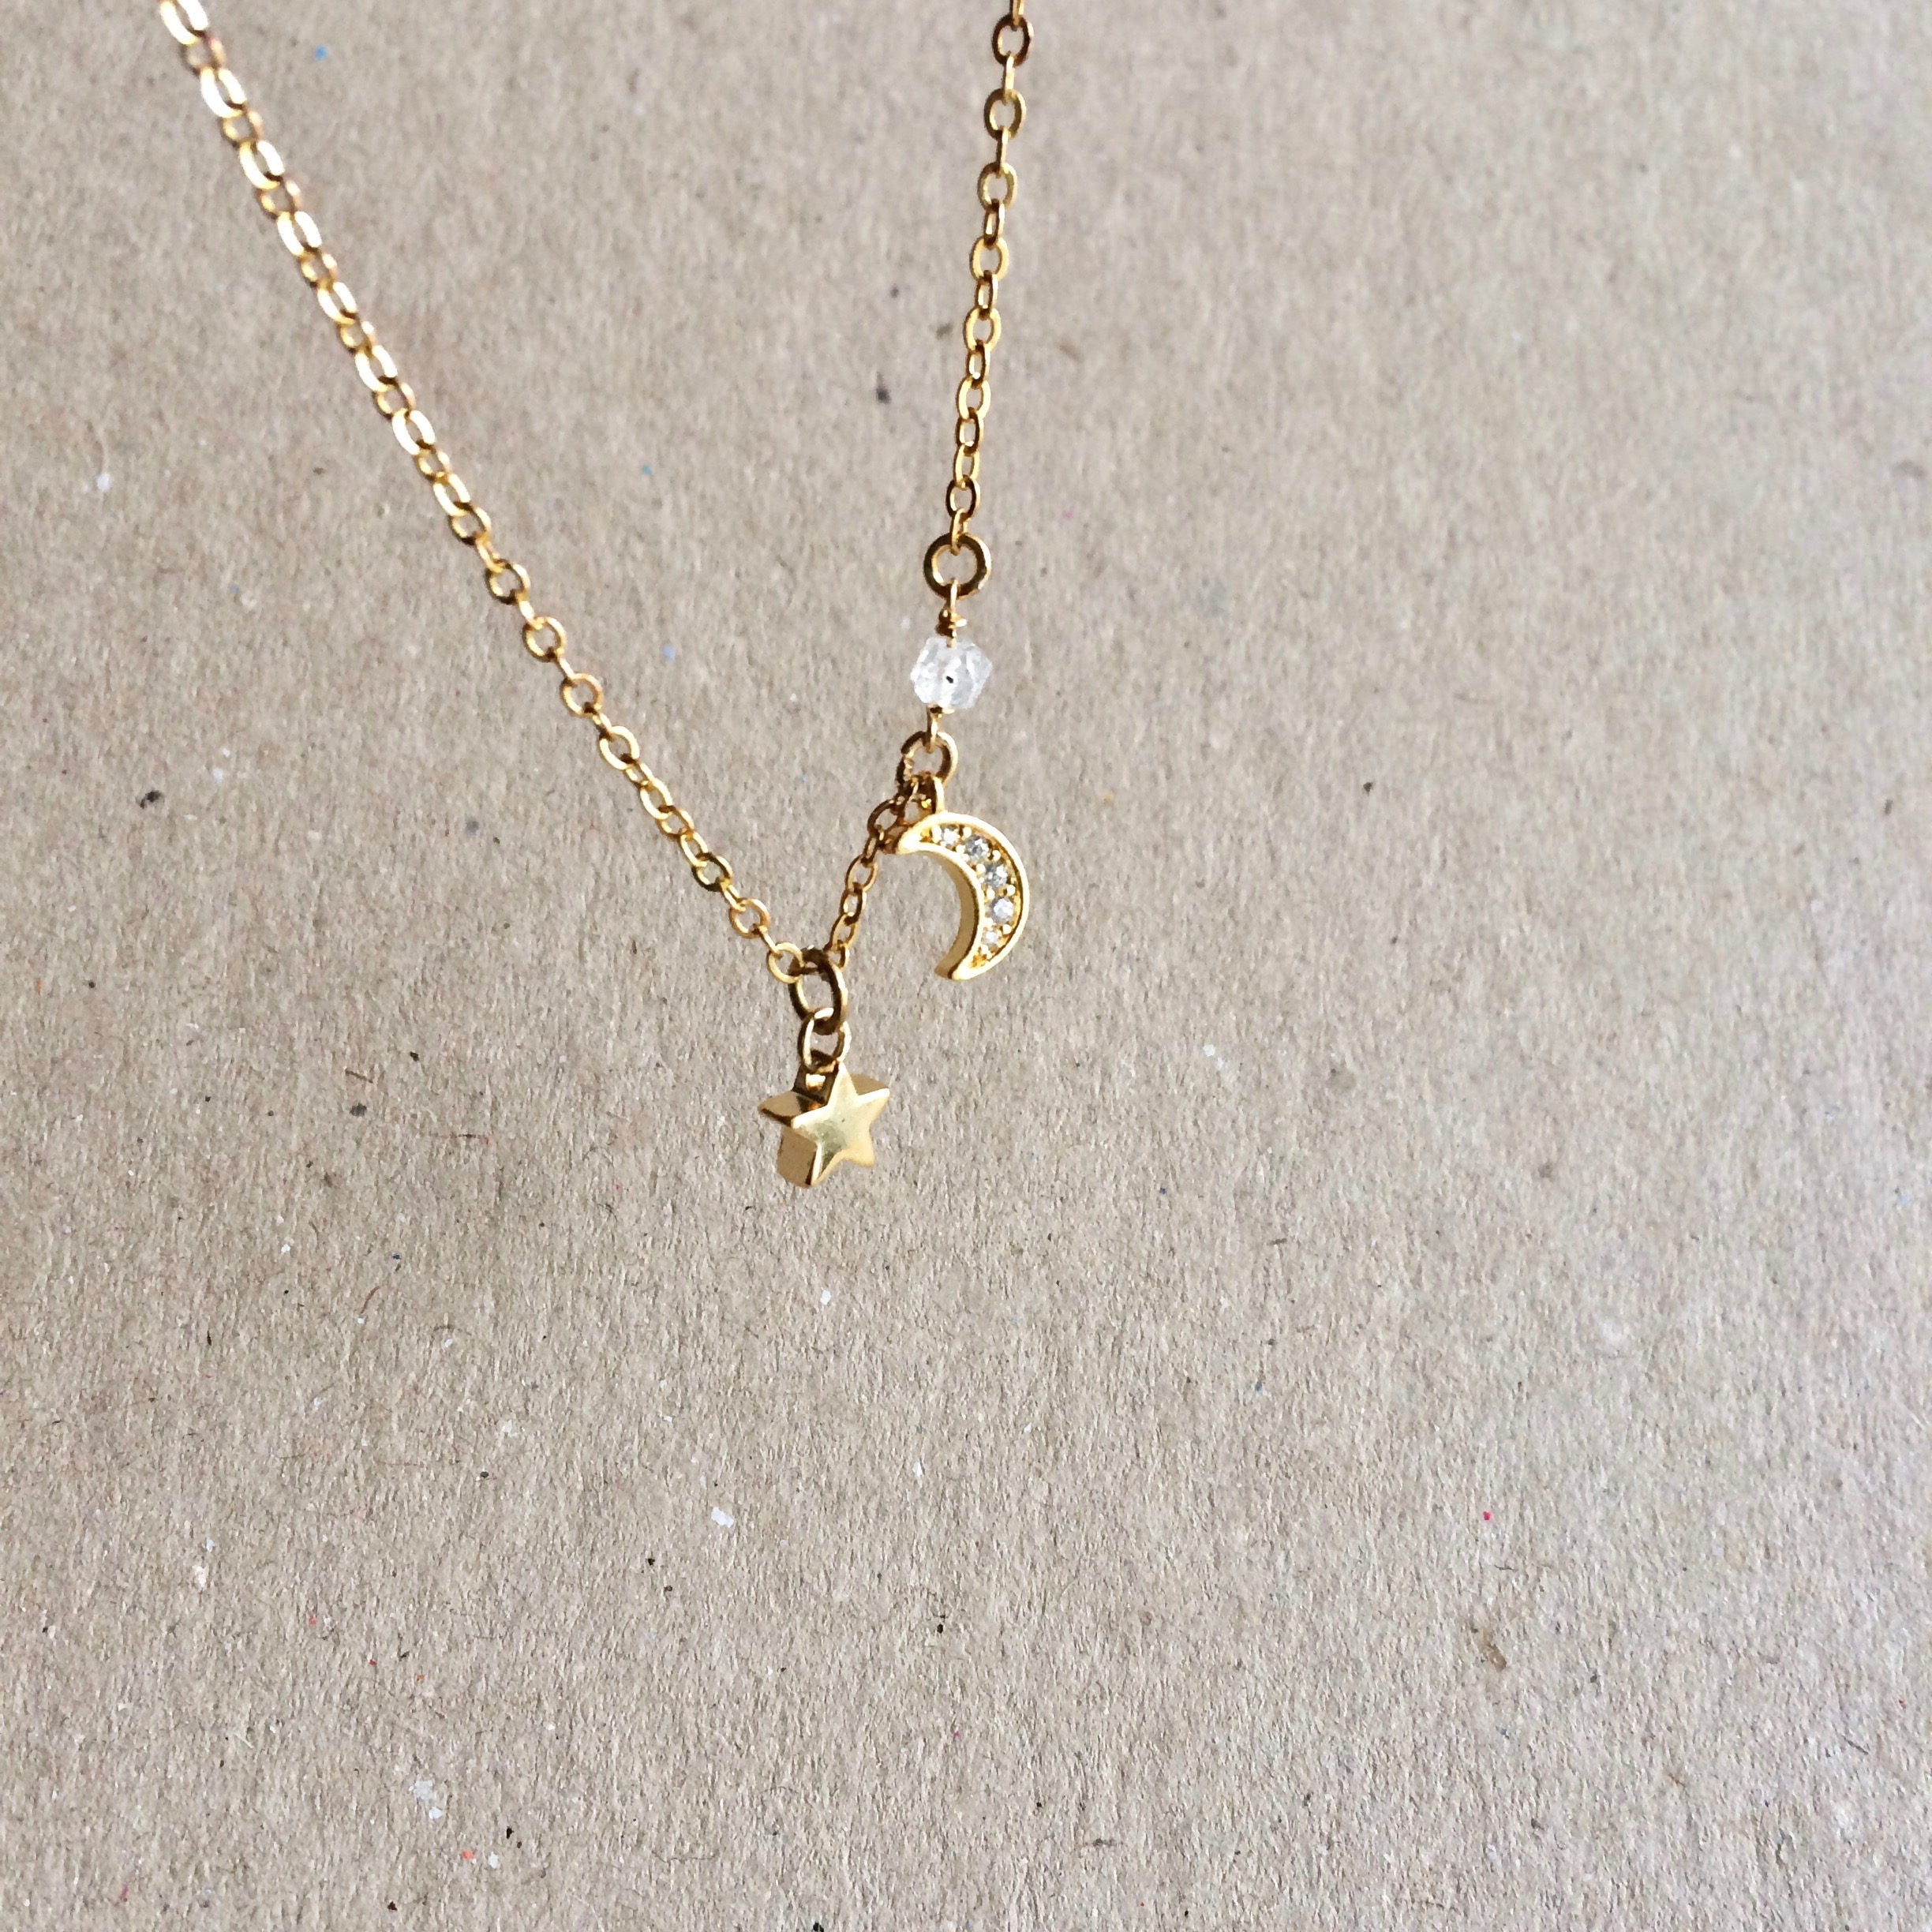 Tiny Moon & Star Herkimer Diamond Crystal Choker Necklace | IB Jewelry